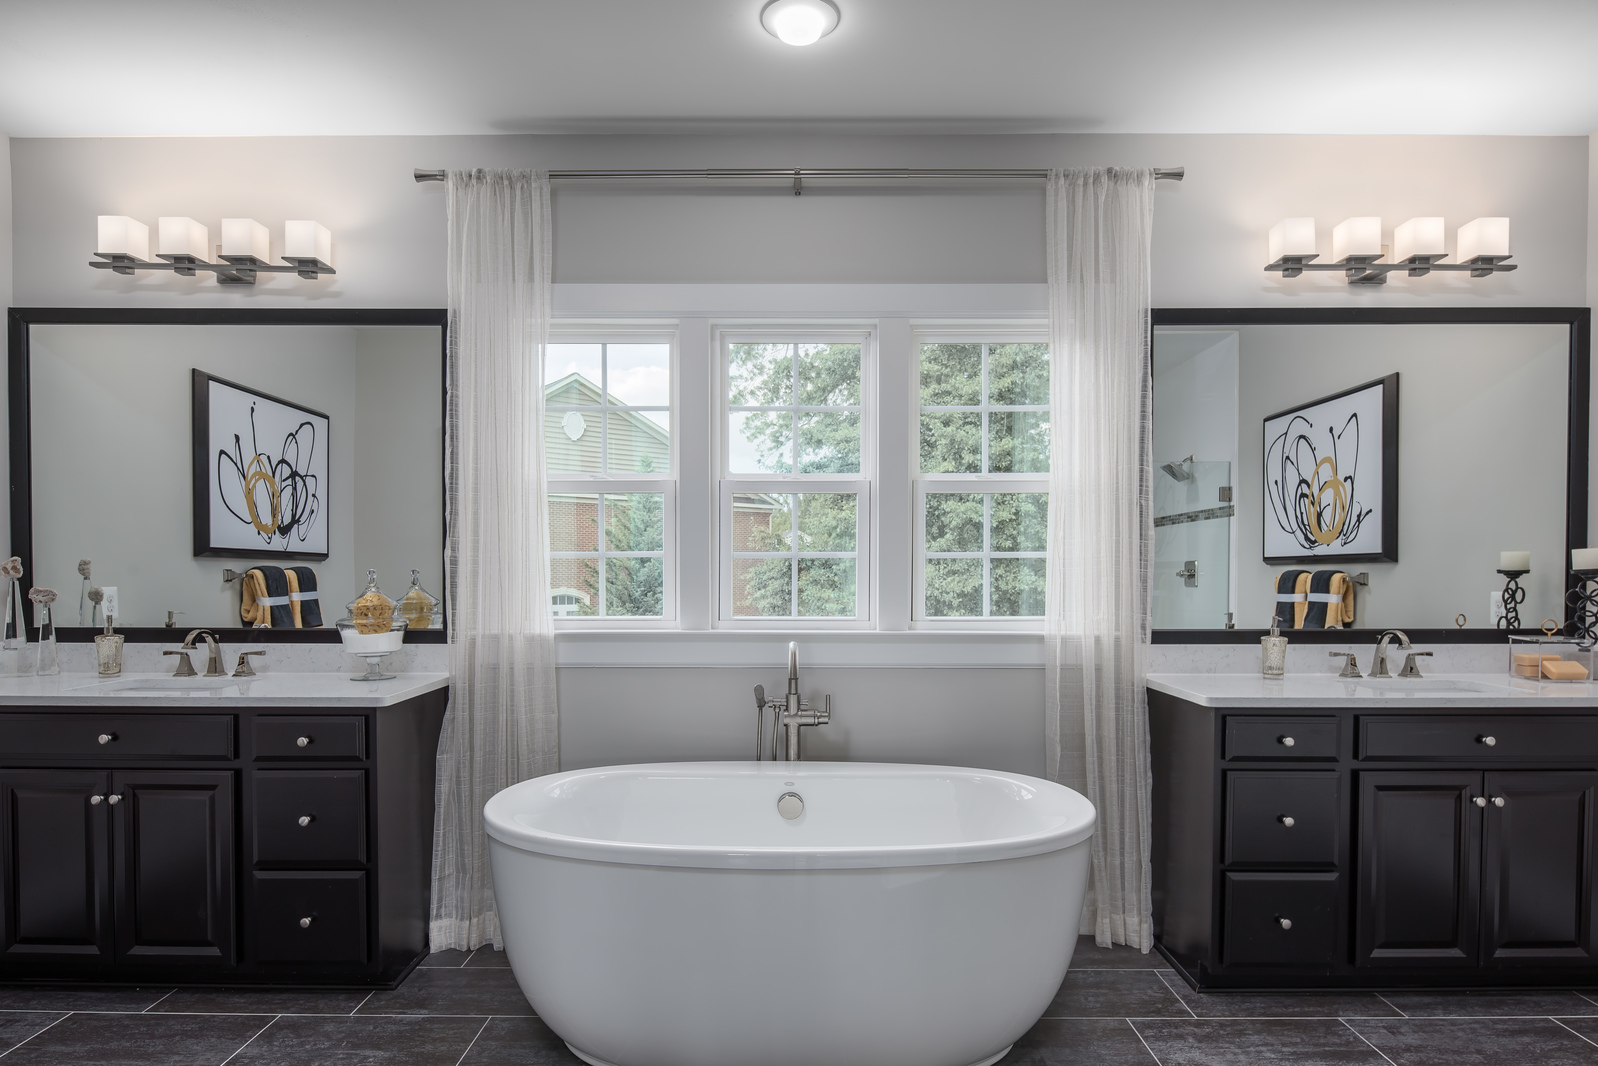 True luxury is a standing soak tub and separate shower—a whole new way to pamper yourself!